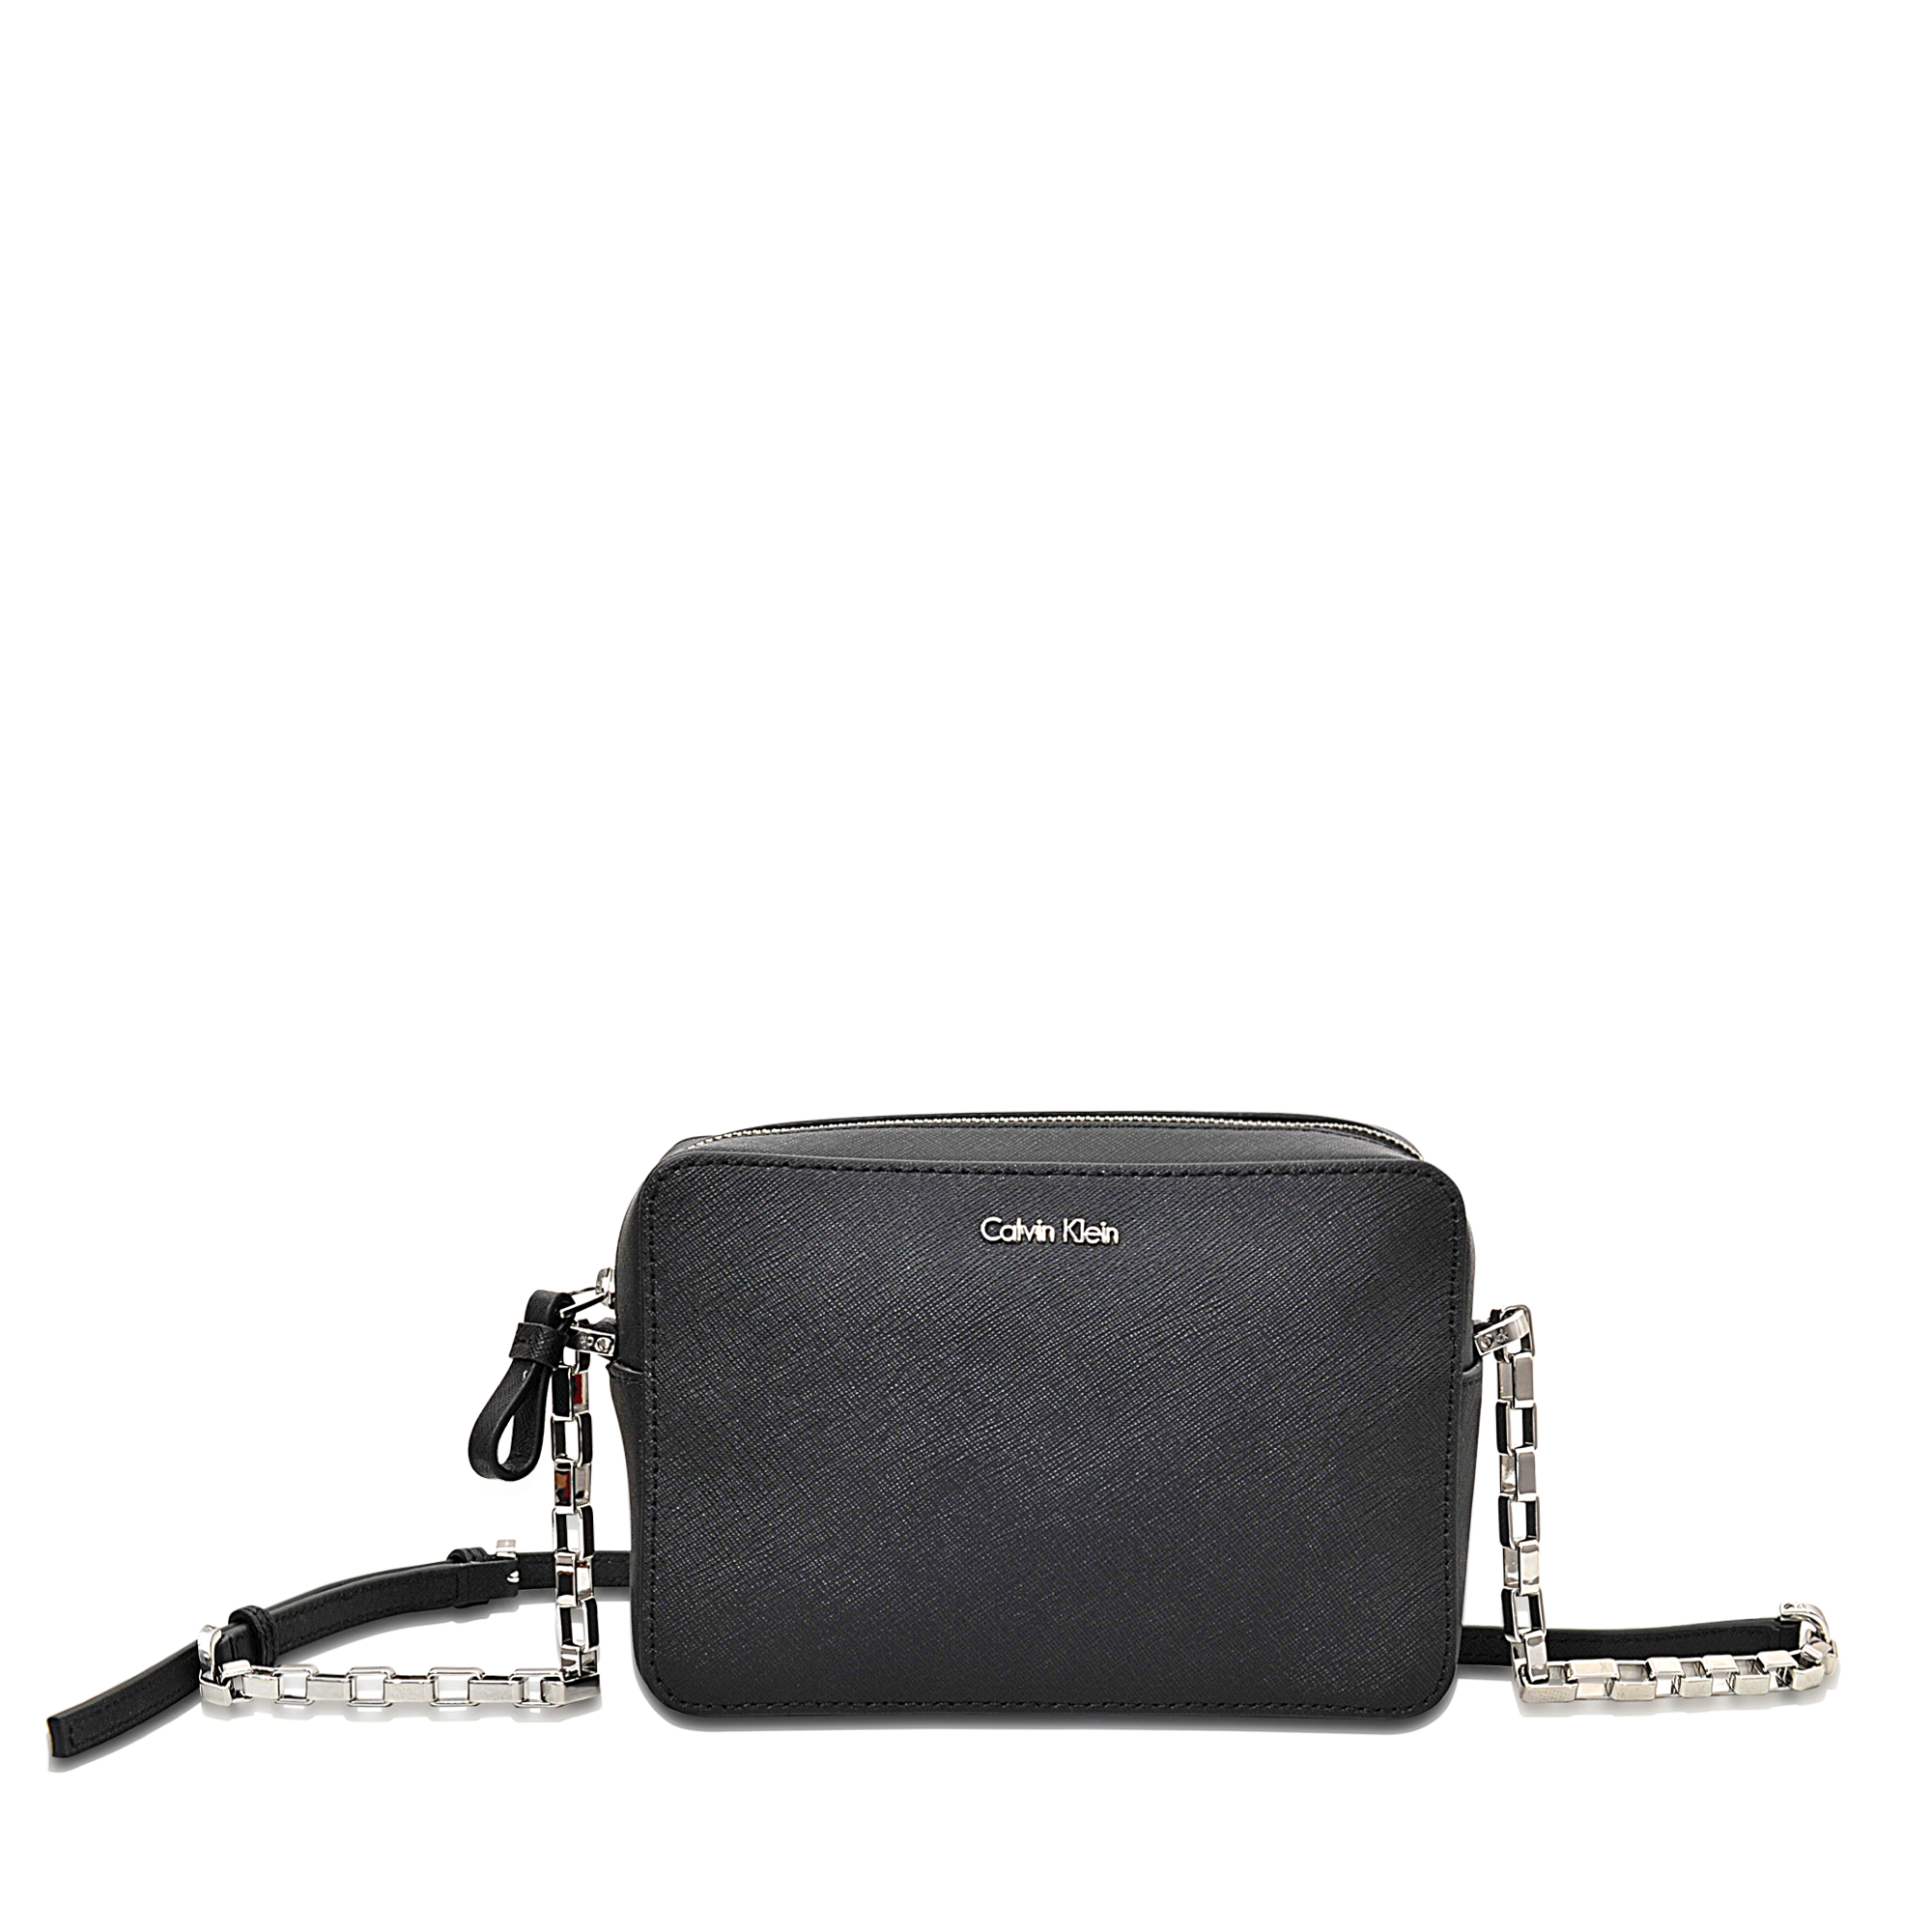 3d5d8ea3ecc1 Calvin Klein Sofie Mini Crossbody Bag in Black - Lyst